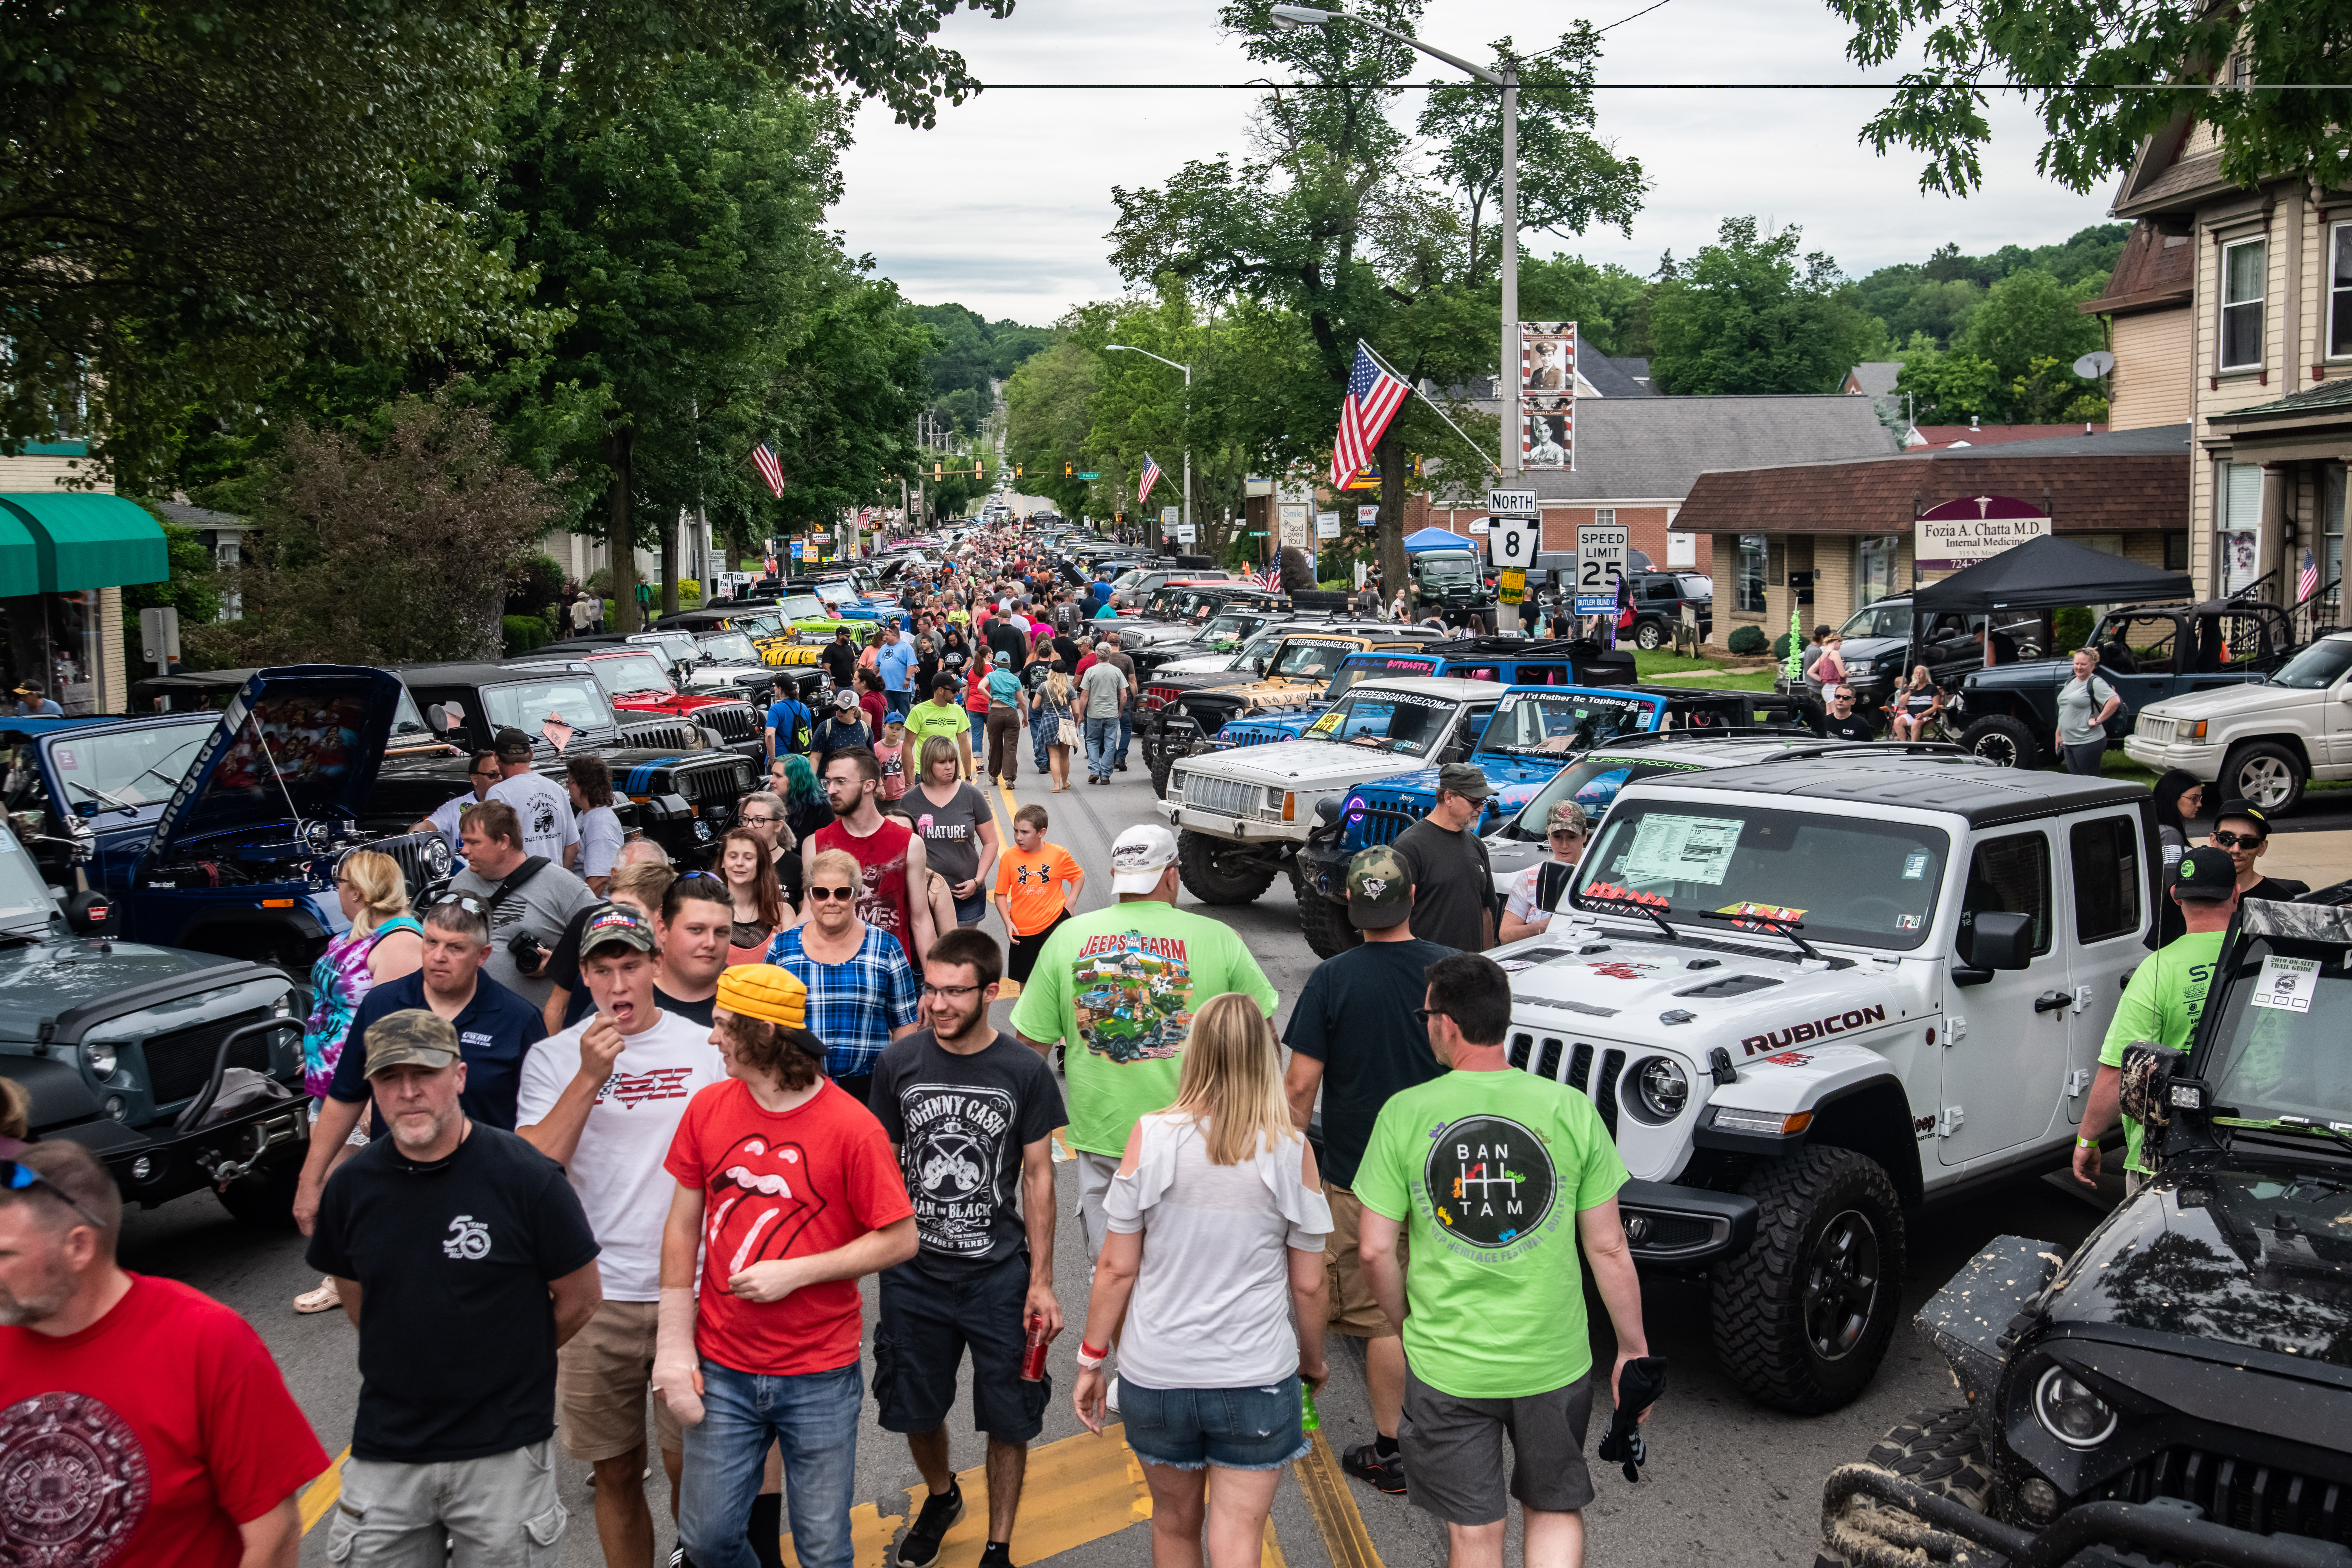 Many people at a jeep festival.